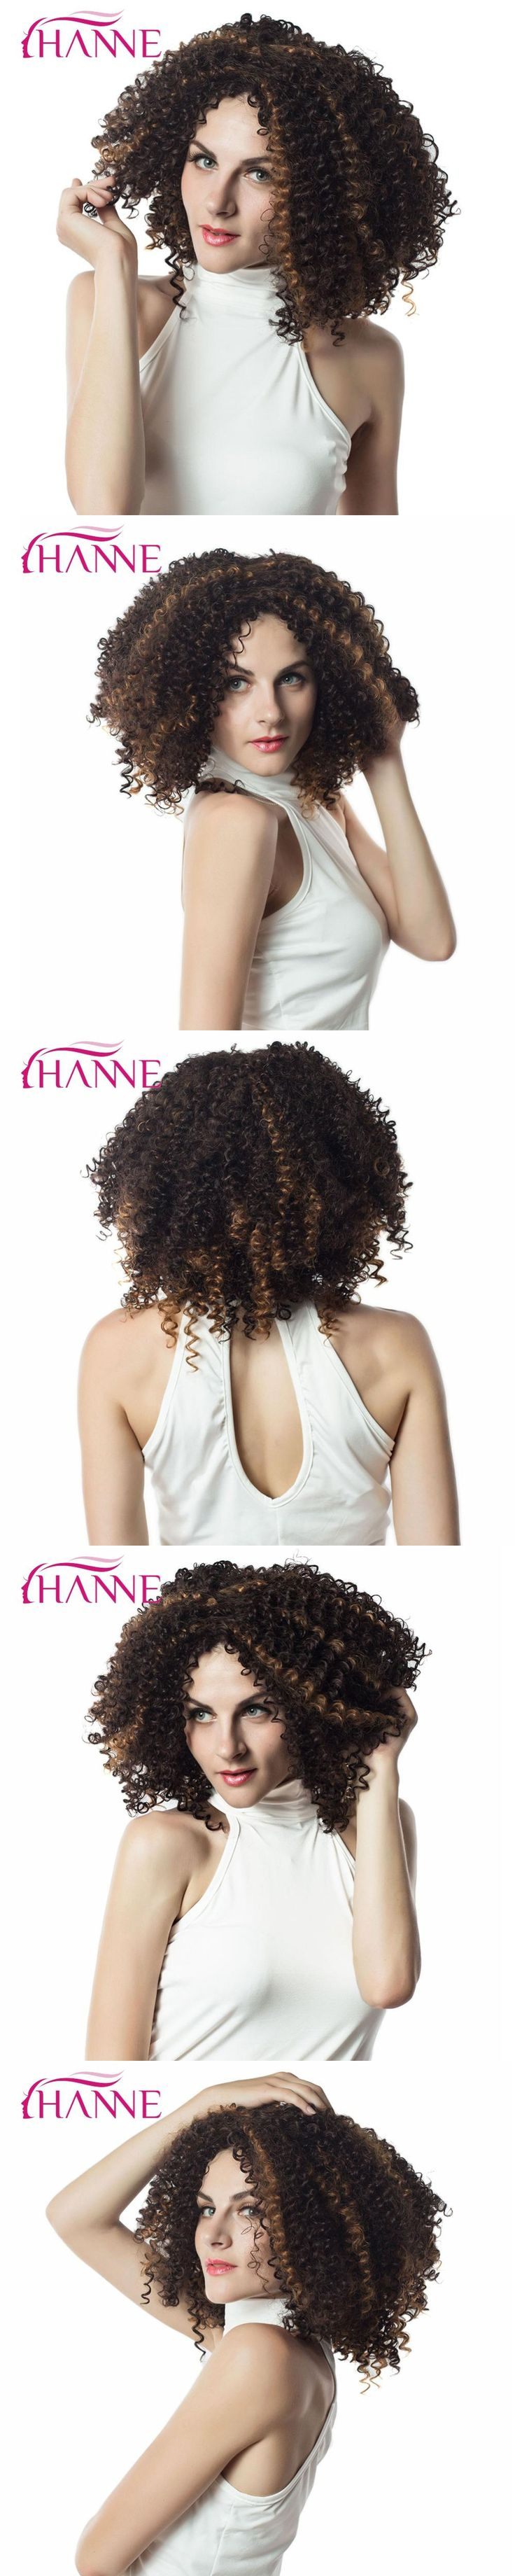 HANNE Medium Length Kinky Curly Mixed Brown And Blonde Heat Resistant Synthetic Hair Wigs for Black Women African American Wig